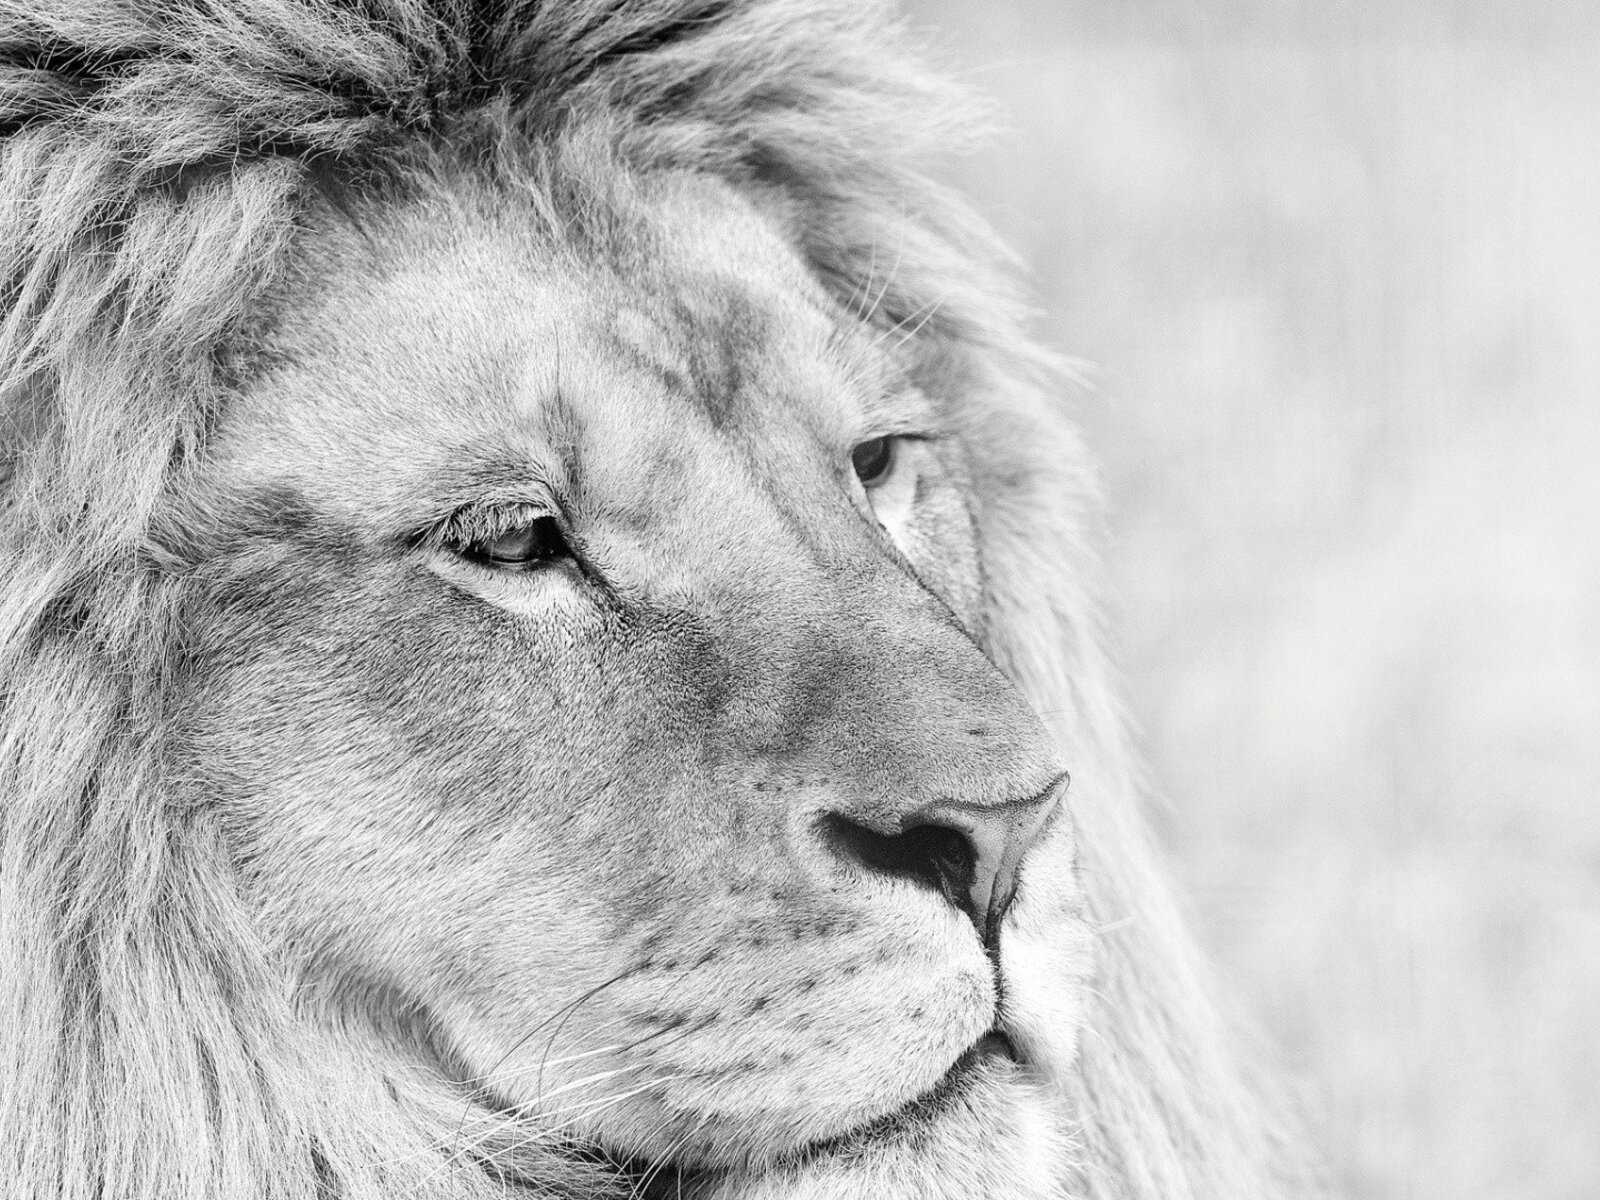 lion-monochrome-4k.jpg